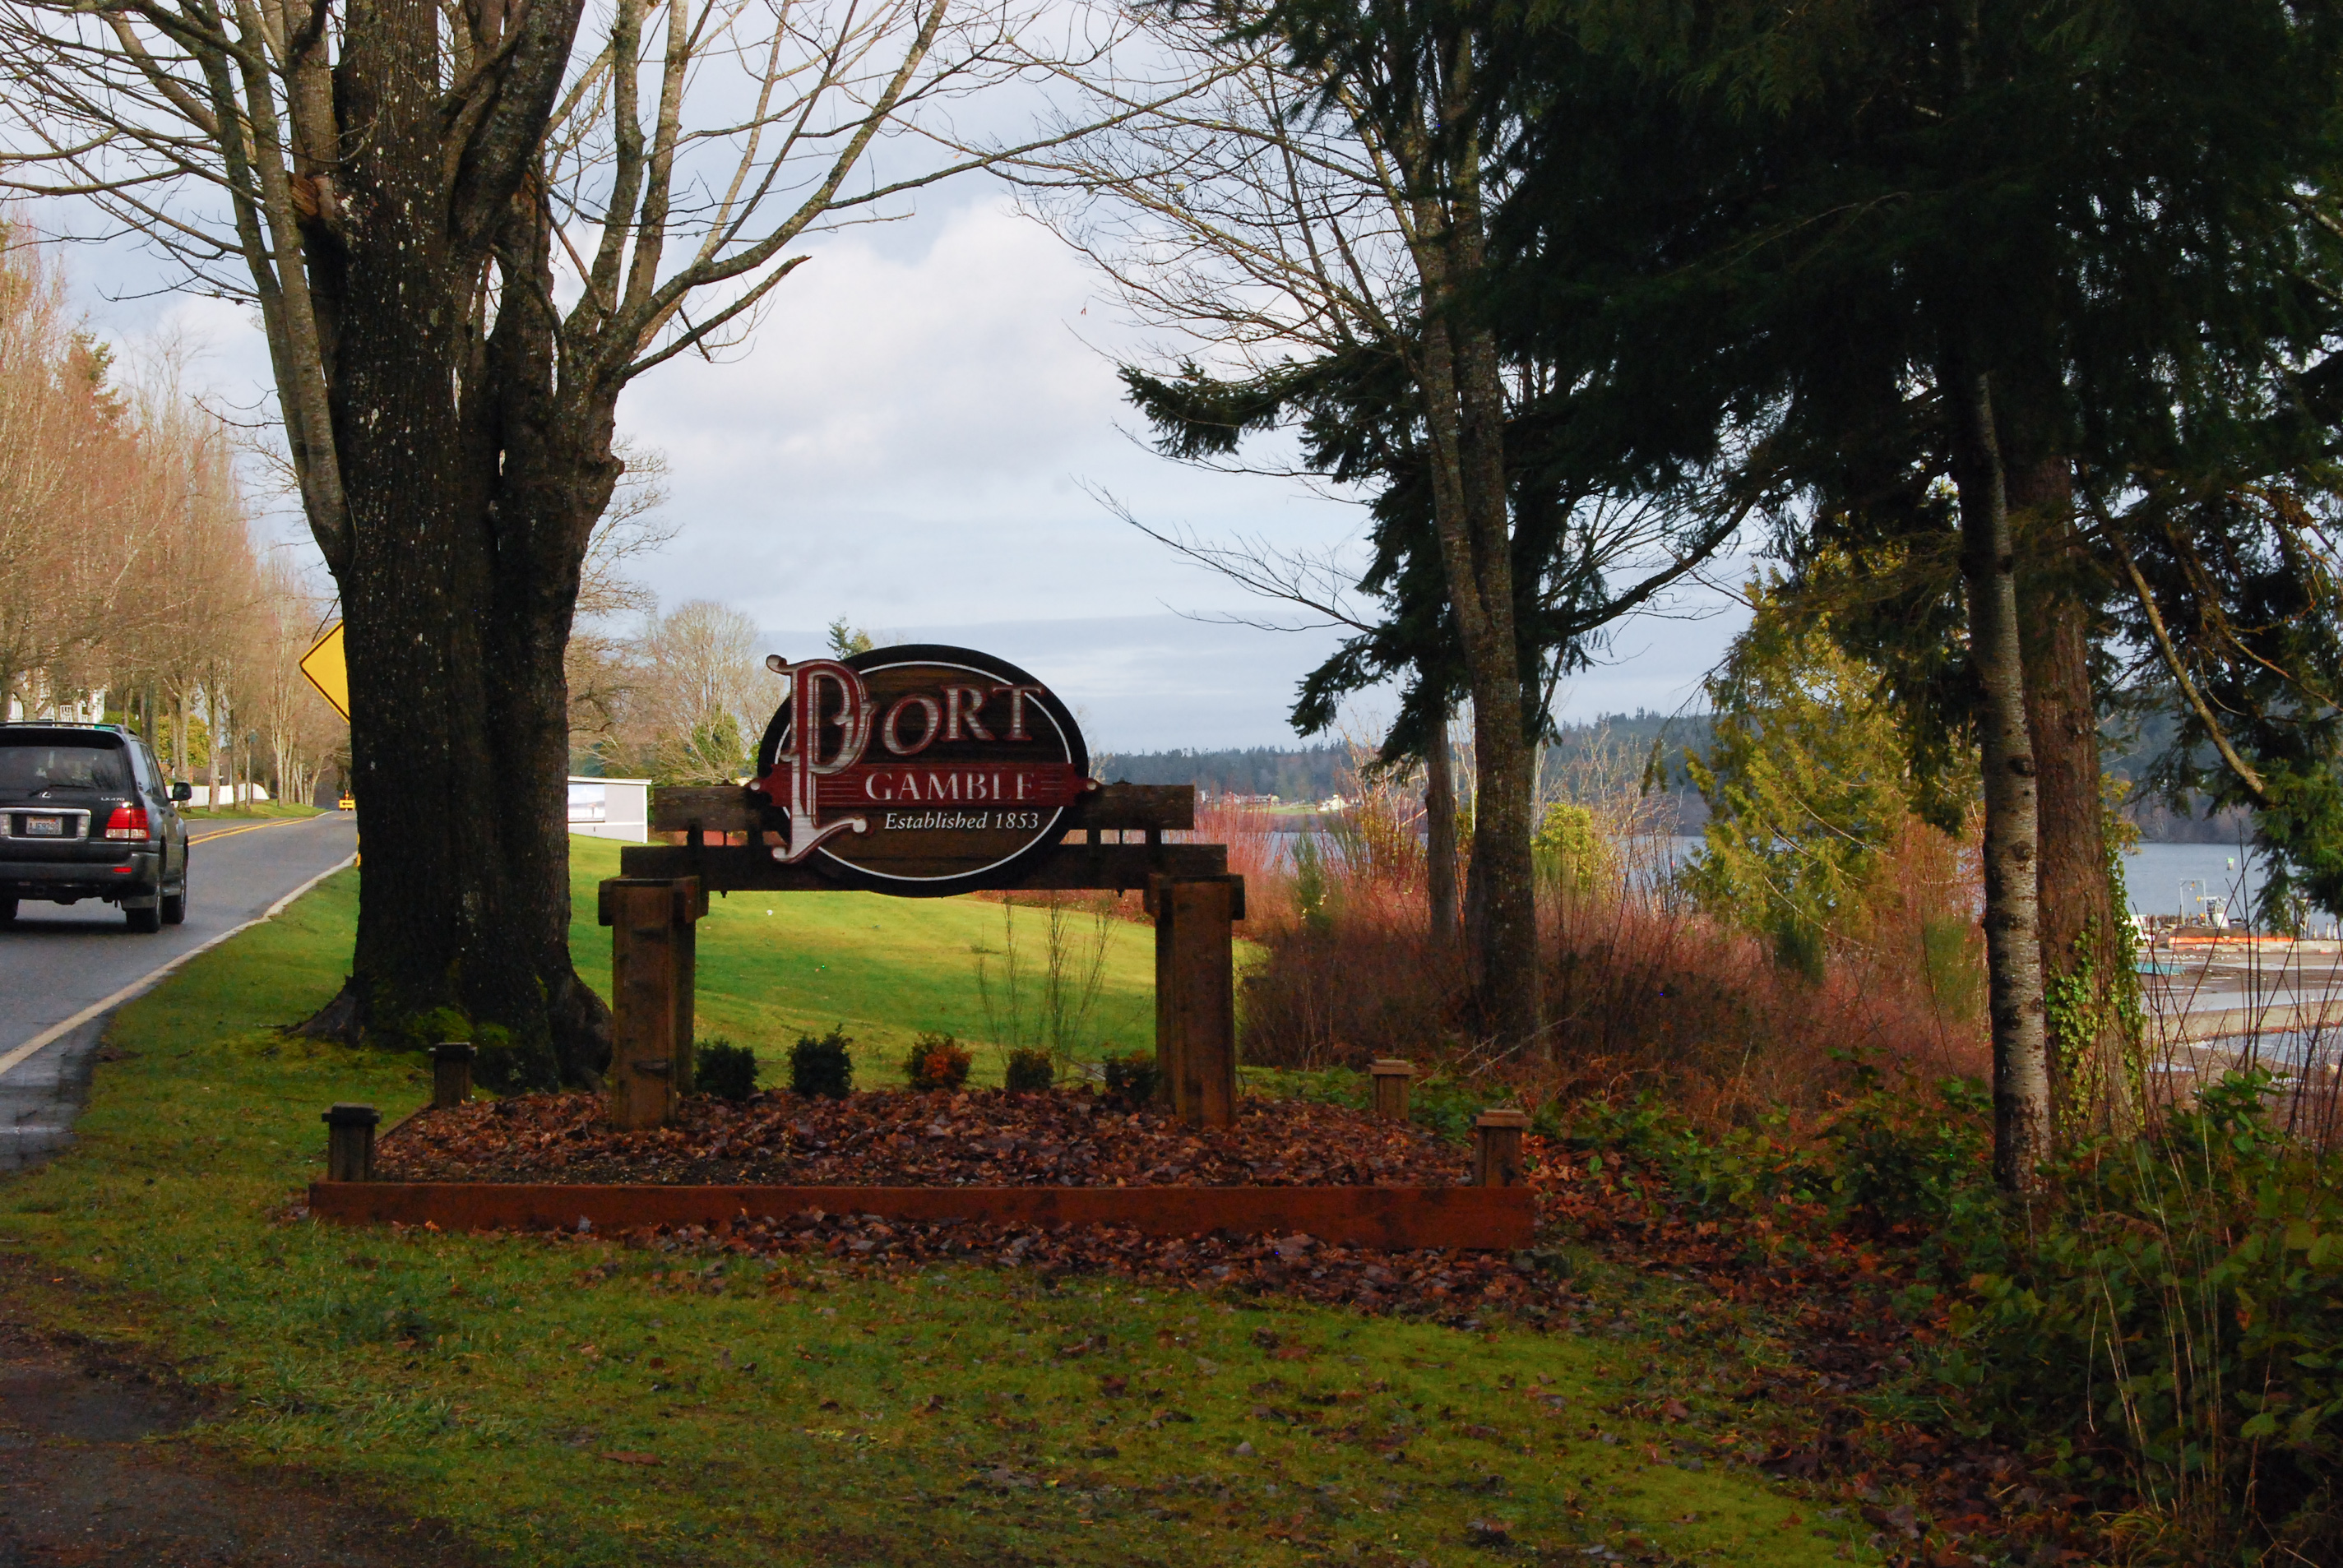 The quaint town of Port Gamble is great afternoon getaway from Seattle (Rebecca Mongrain/Seattle Refined)